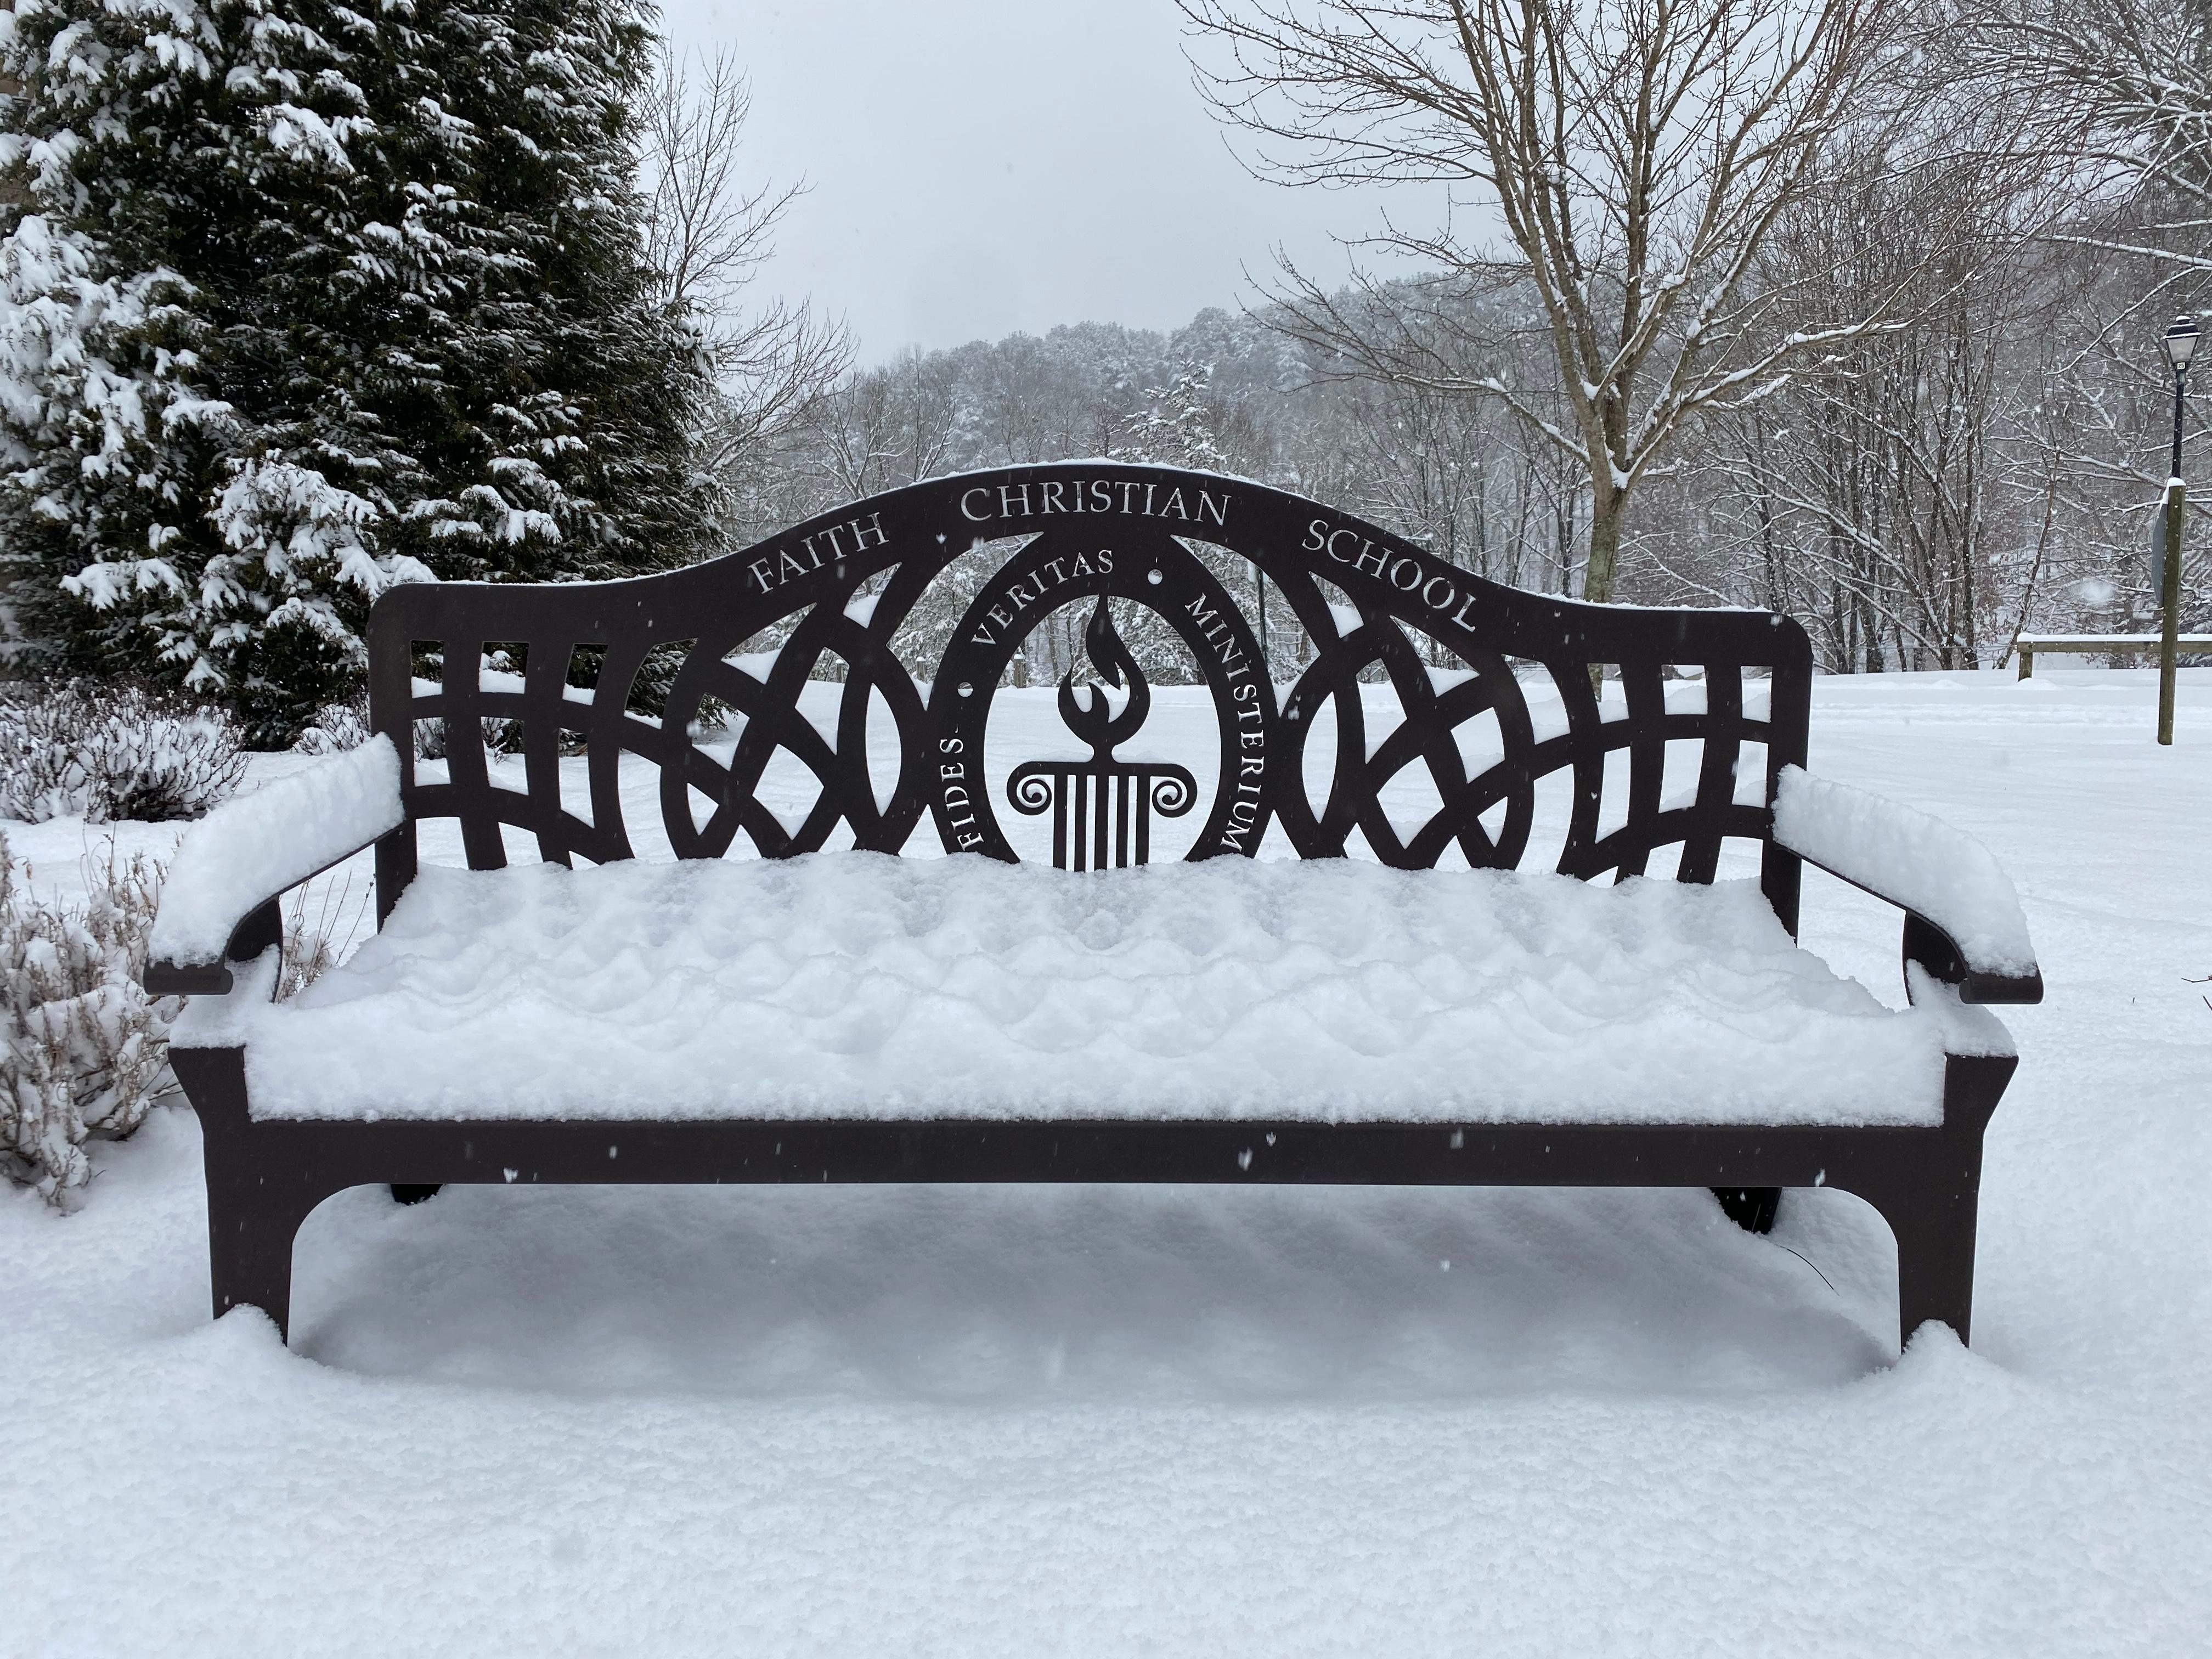 Snow on bench January 2021